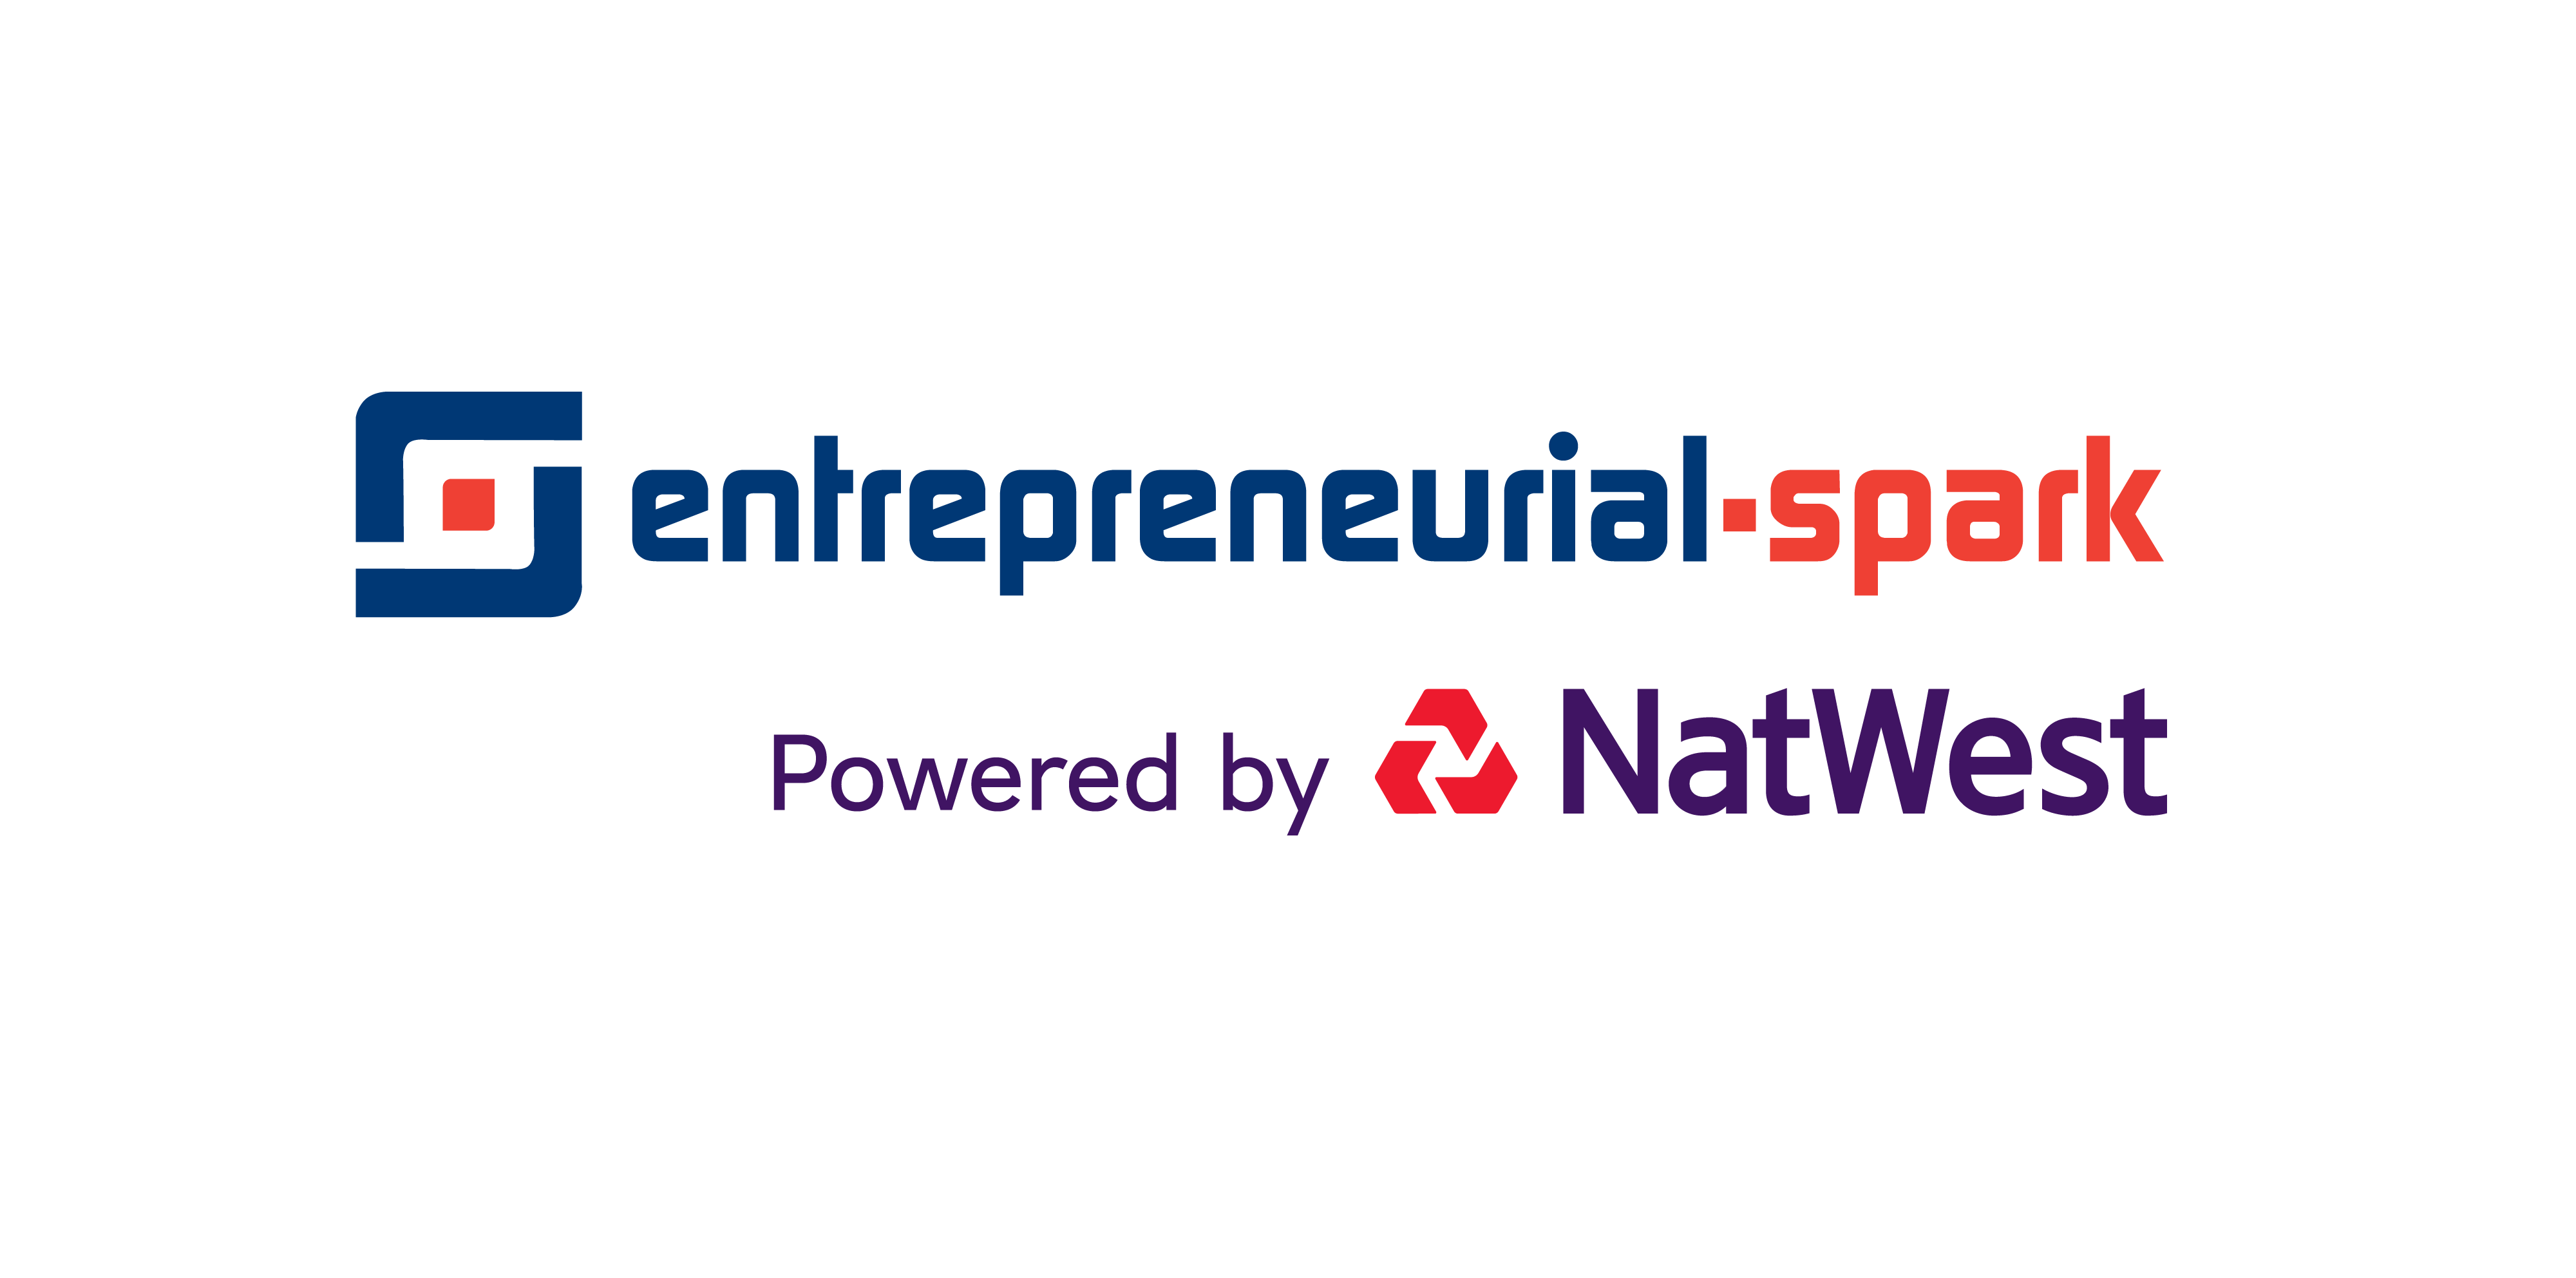 Entrepreneurial Spark powered by NatWest - Bi